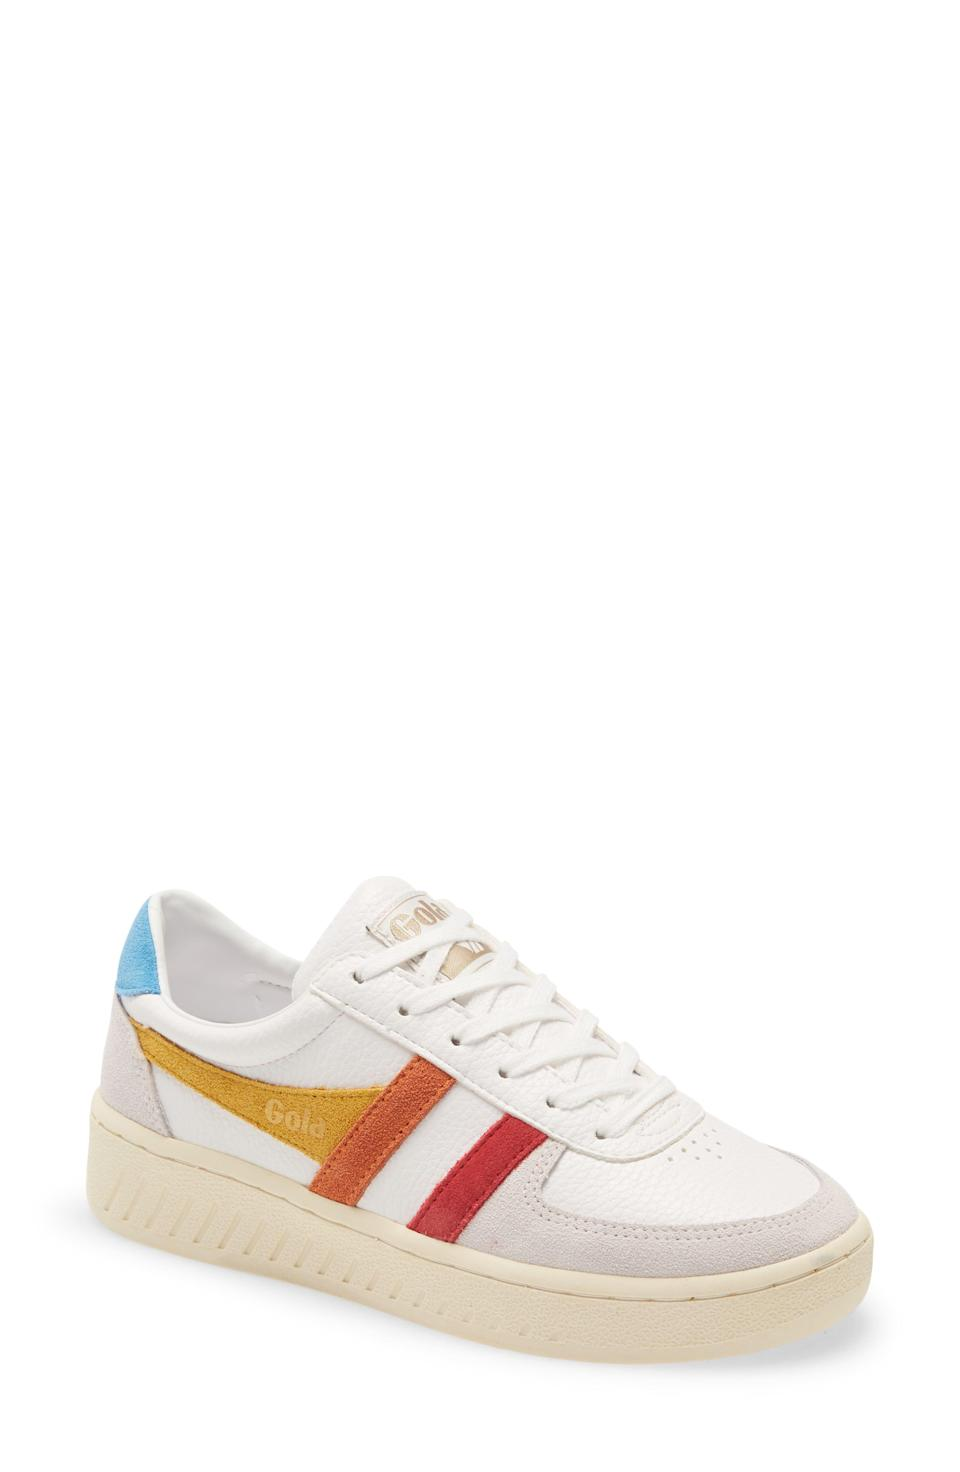 """<p><strong>GOLA</strong></p><p>nordstrom.com</p><p><strong>$100.00</strong></p><p><a href=""""https://go.redirectingat.com?id=74968X1596630&url=https%3A%2F%2Fwww.nordstrom.com%2Fs%2Fgola-classics-grandslam-trident-sneaker-women%2F5786896&sref=https%3A%2F%2Fwww.cosmopolitan.com%2Fstyle-beauty%2Ffashion%2Fg35017315%2F2021-shoe-trends%2F"""" rel=""""nofollow noopener"""" target=""""_blank"""" data-ylk=""""slk:Shop Now"""" class=""""link rapid-noclick-resp"""">Shop Now</a></p><p>These tri-colored ones from Gola are just so fun! </p>"""